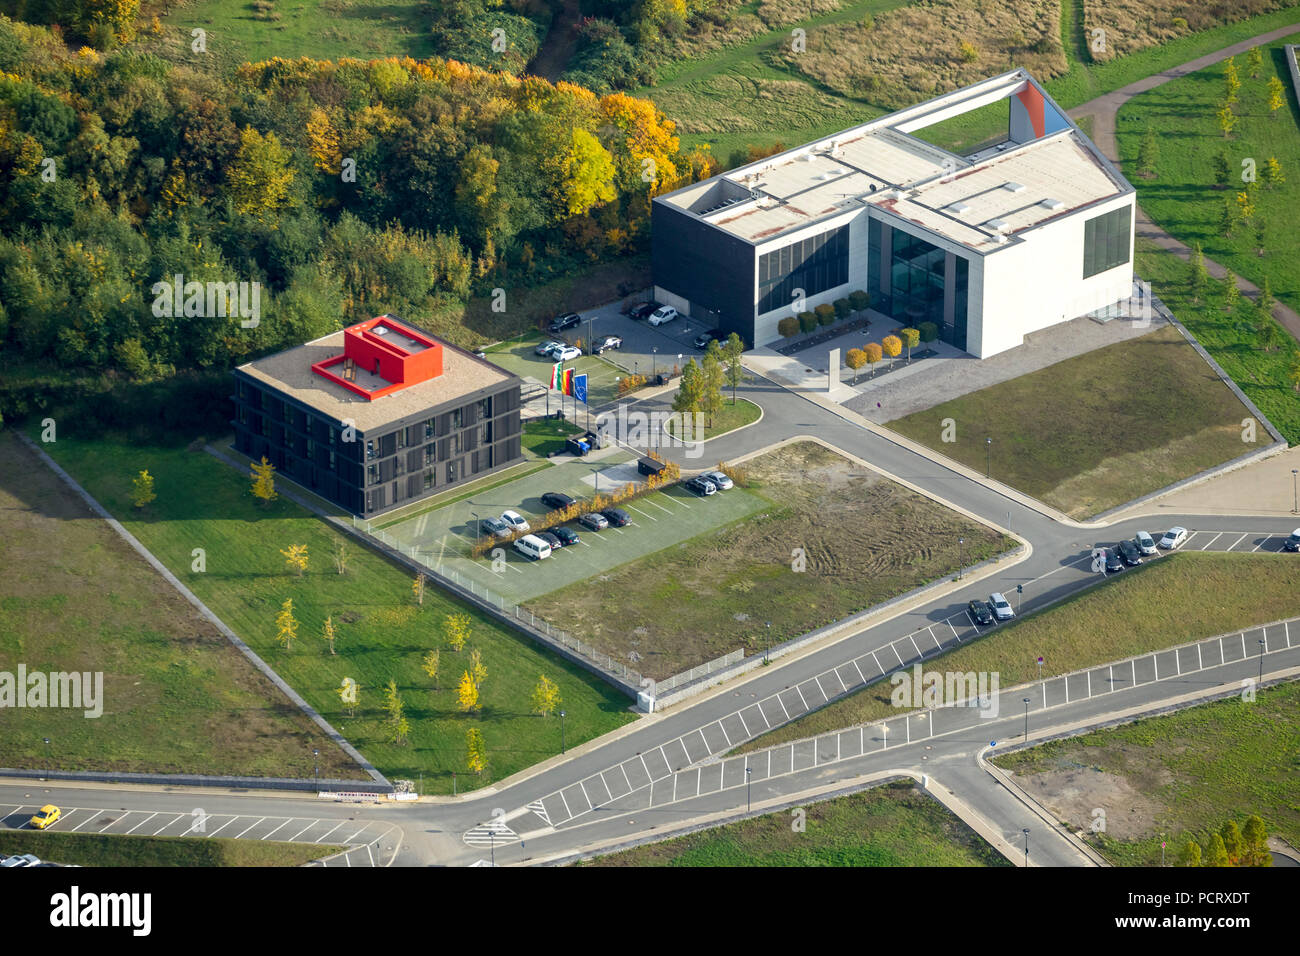 EGR Strategy Center Health NRW, BioMedicine Park health campus, aerial view of Bochum - Stock Image